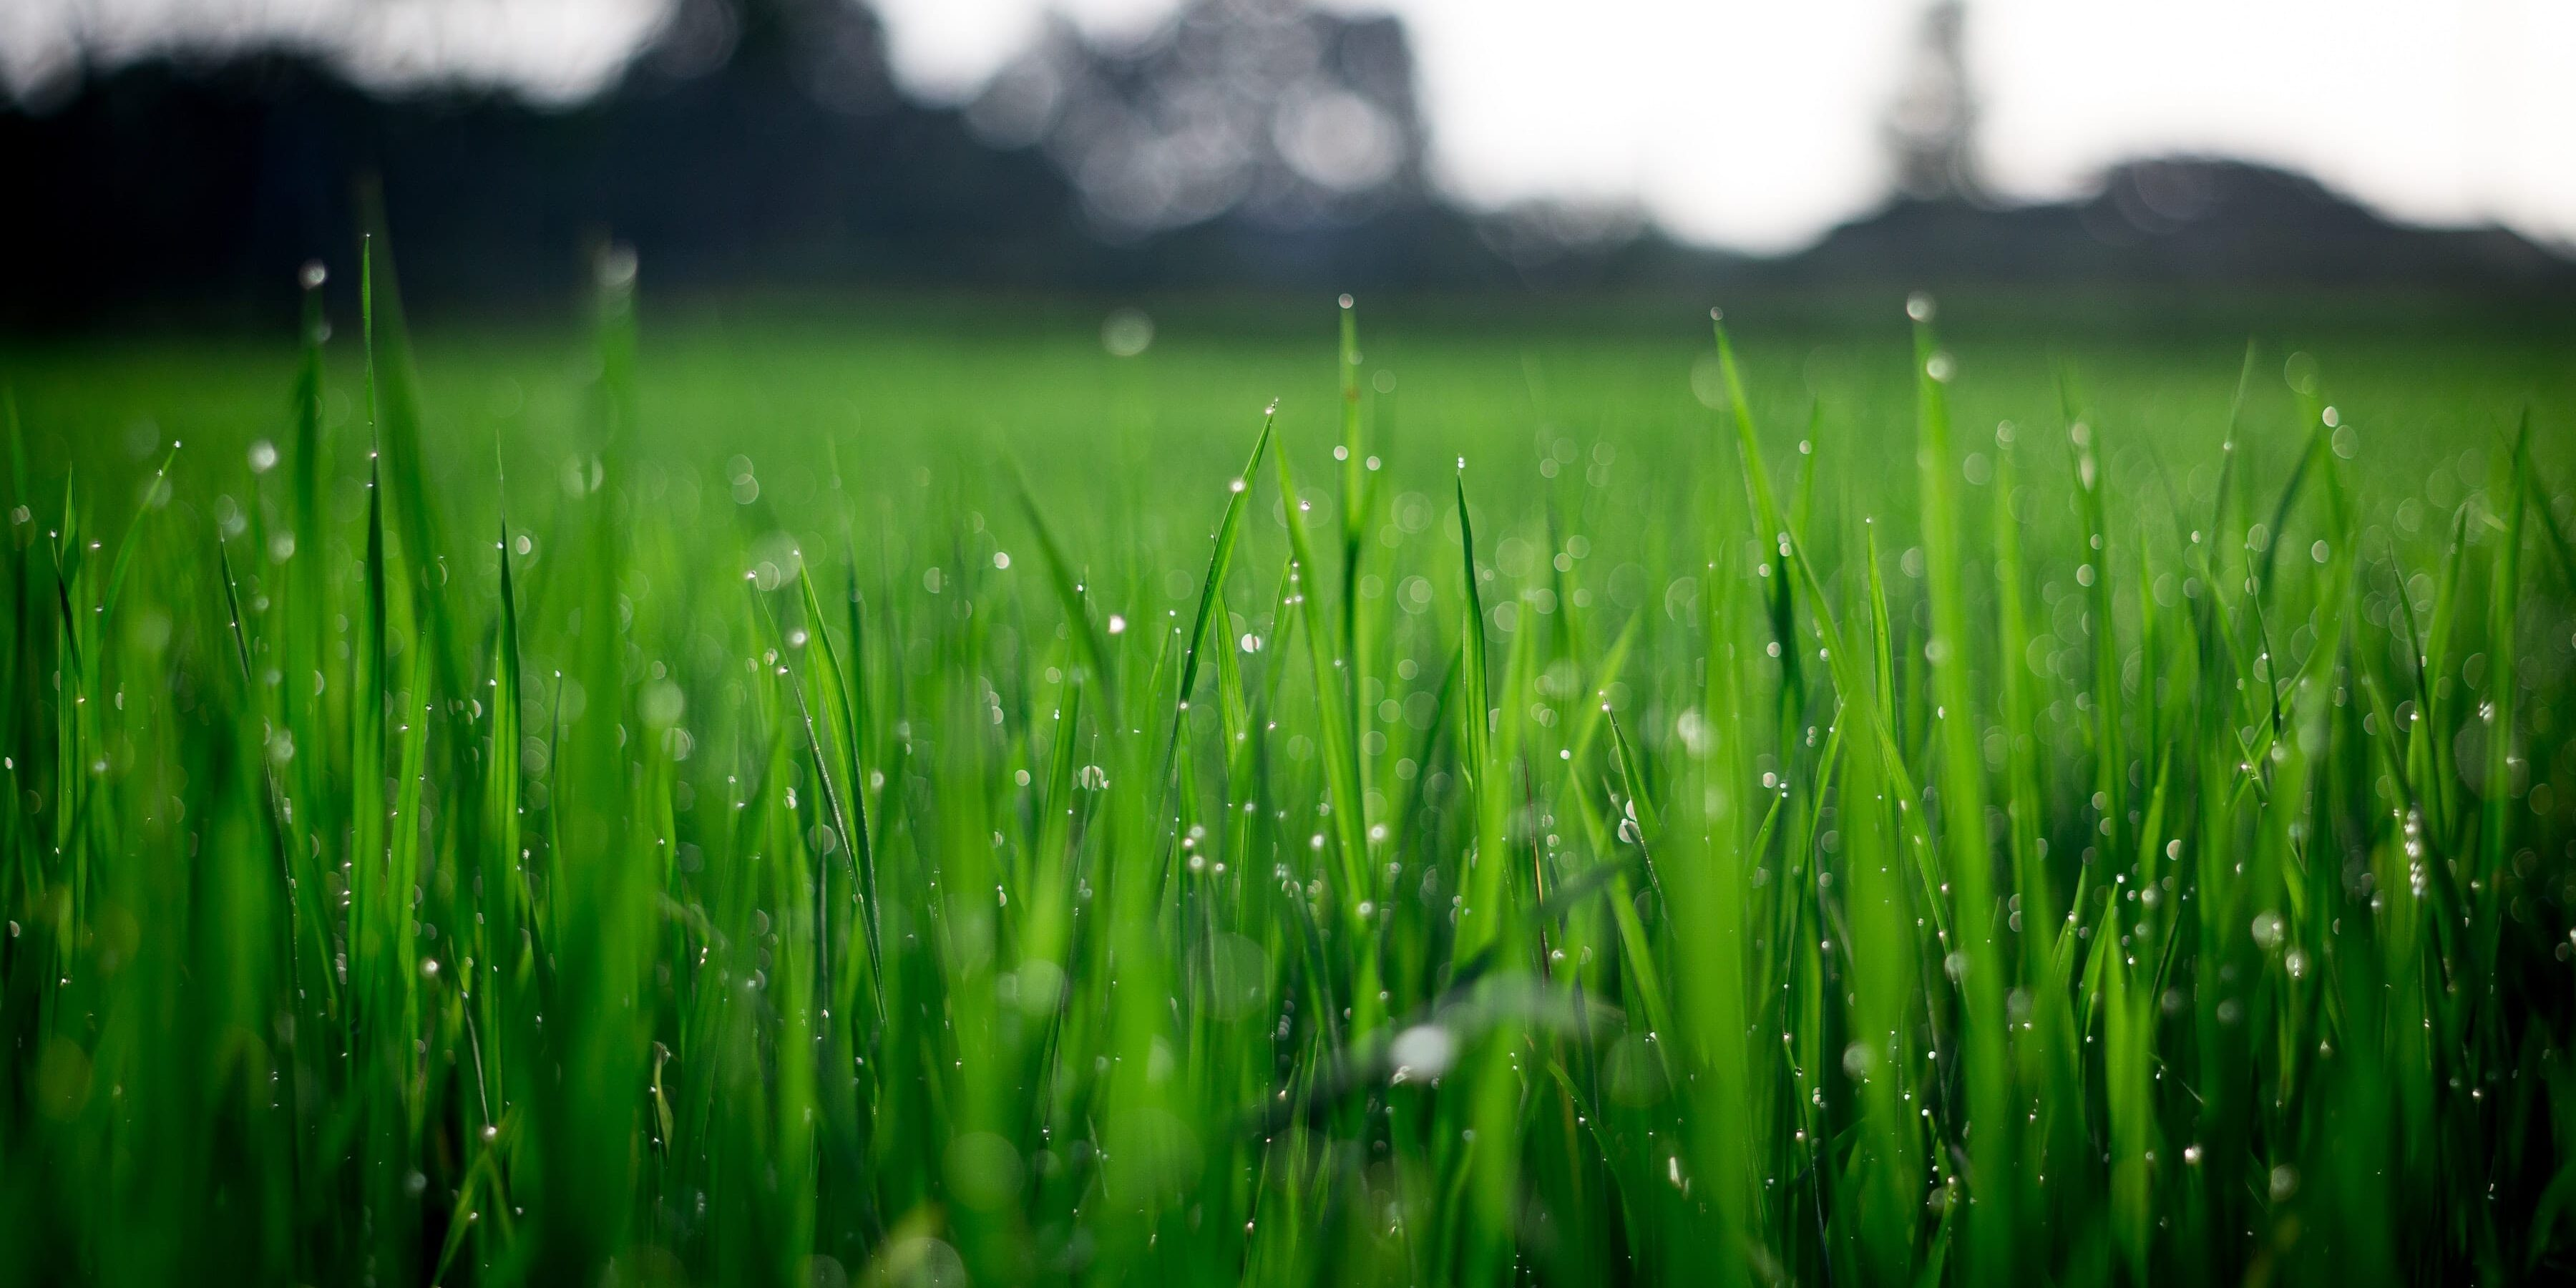 Dew-wet grass